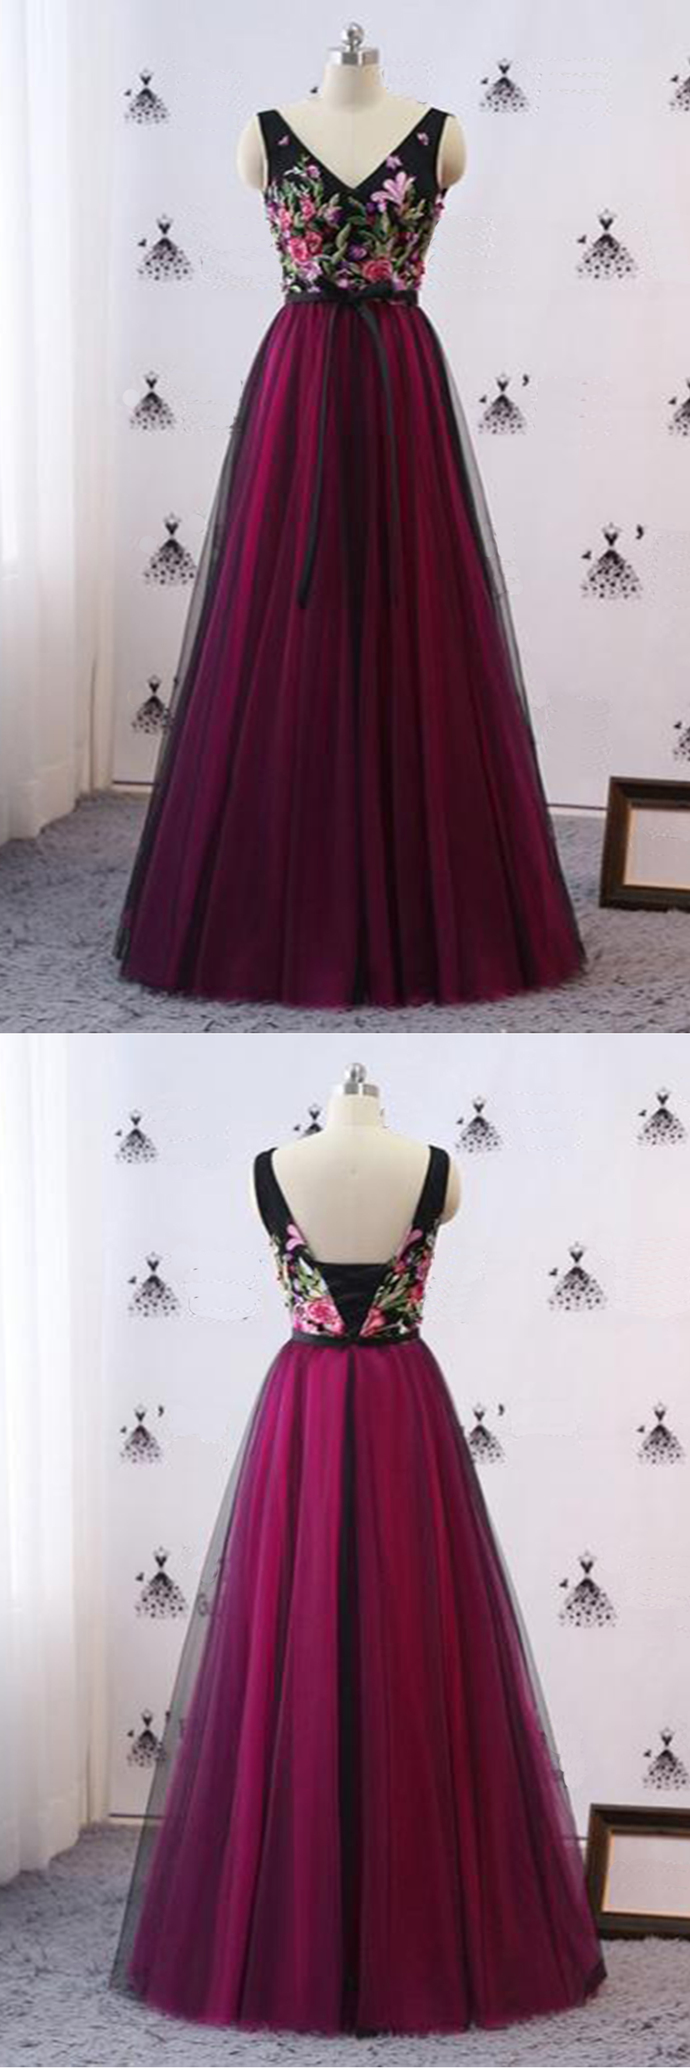 Black Tulle Vintage Embroidery Floral Long Formal Prom Dress BD2474